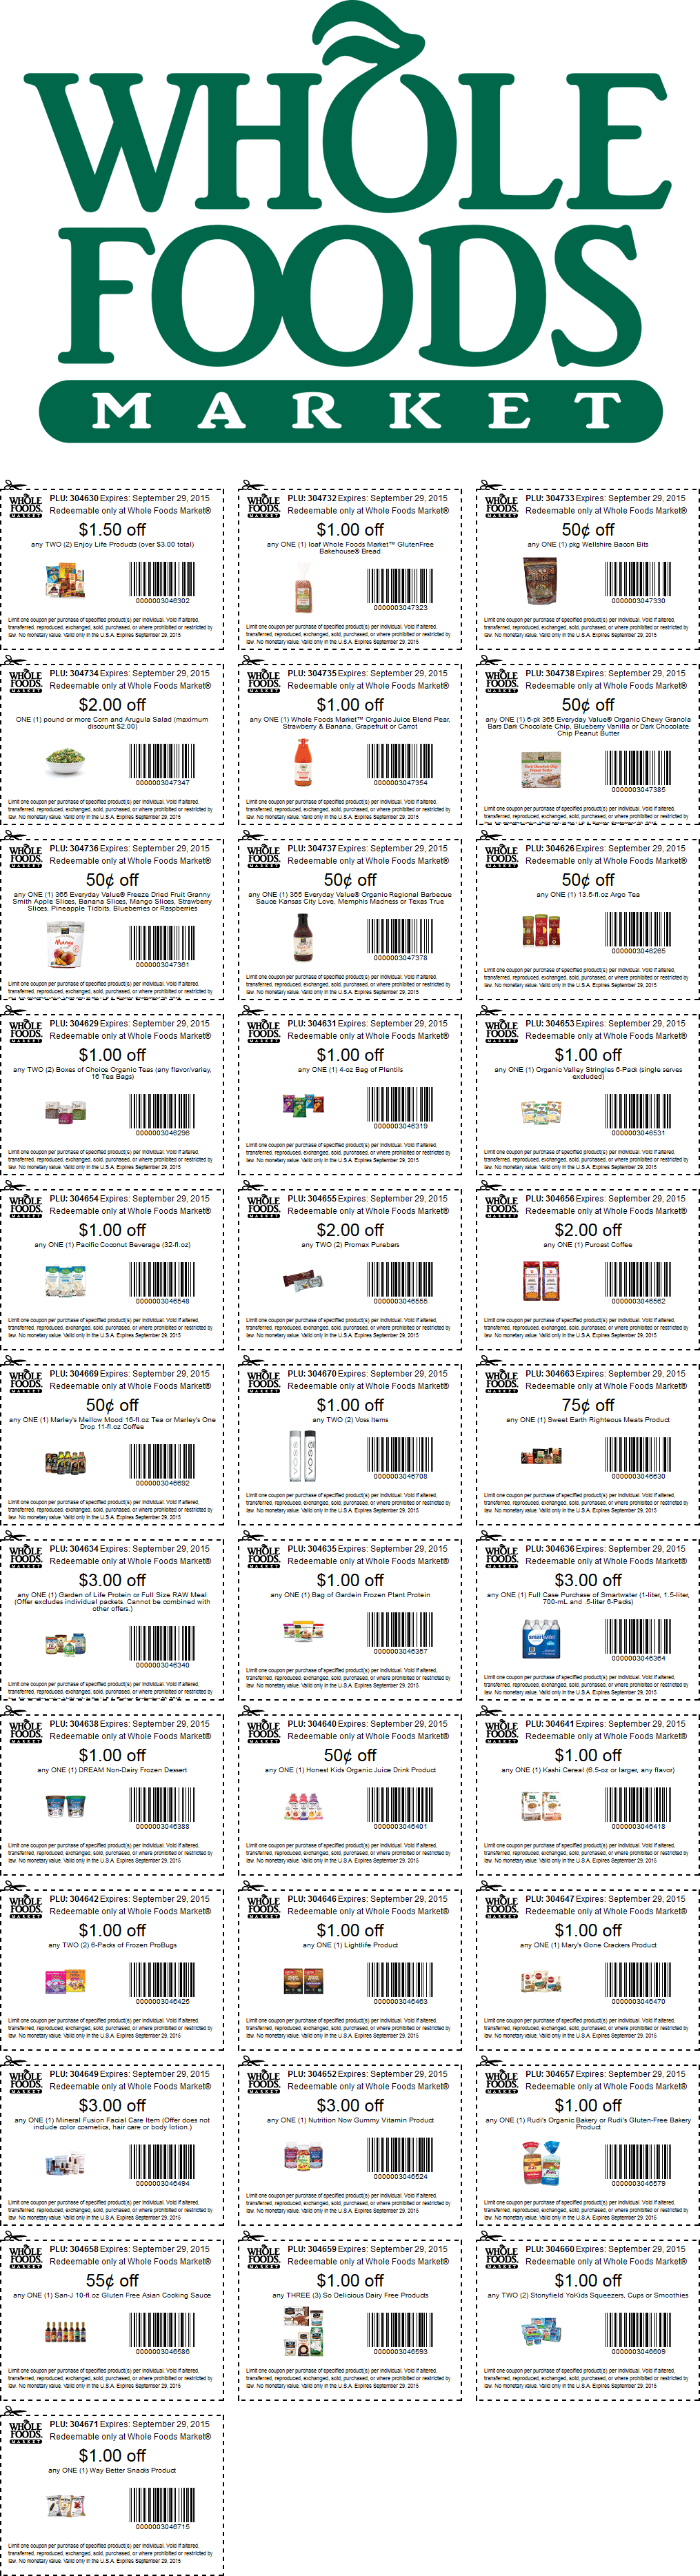 Whole Foods Coupon March 2018 Various grocery coupons for Whole Foods market